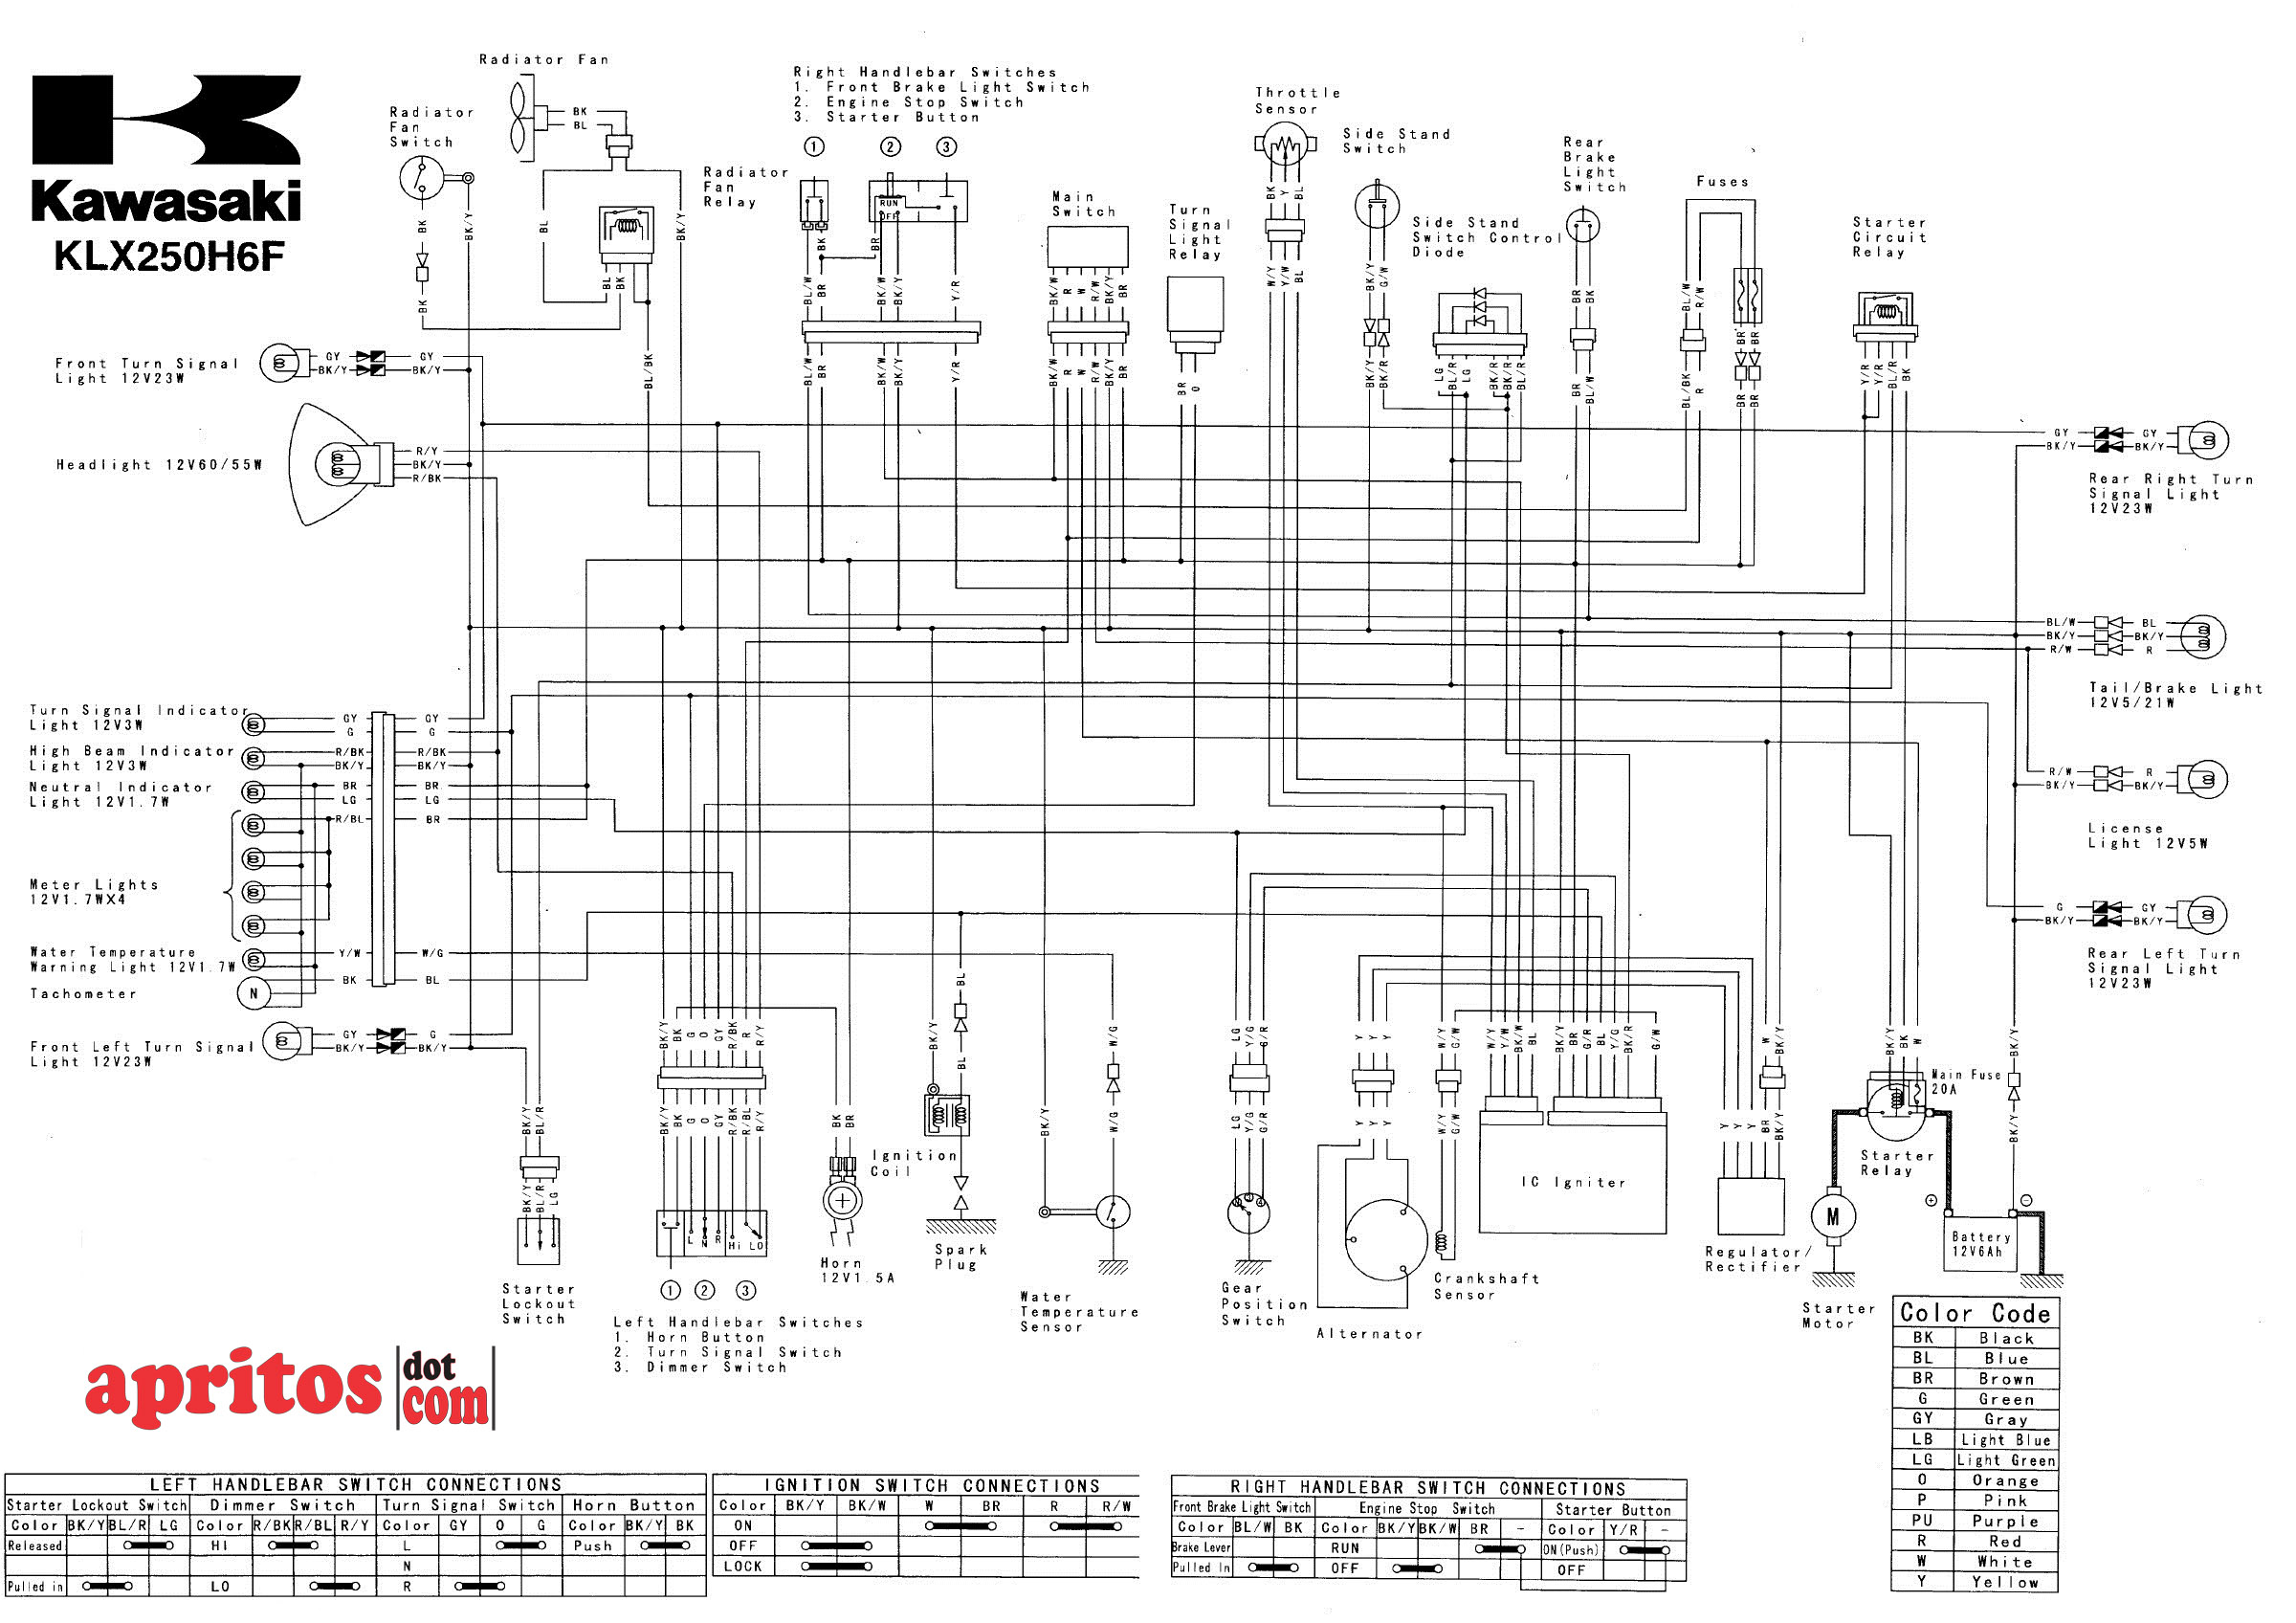 Drayton Rb1 Relay Wiring Diagram : 32 Wiring Diagram